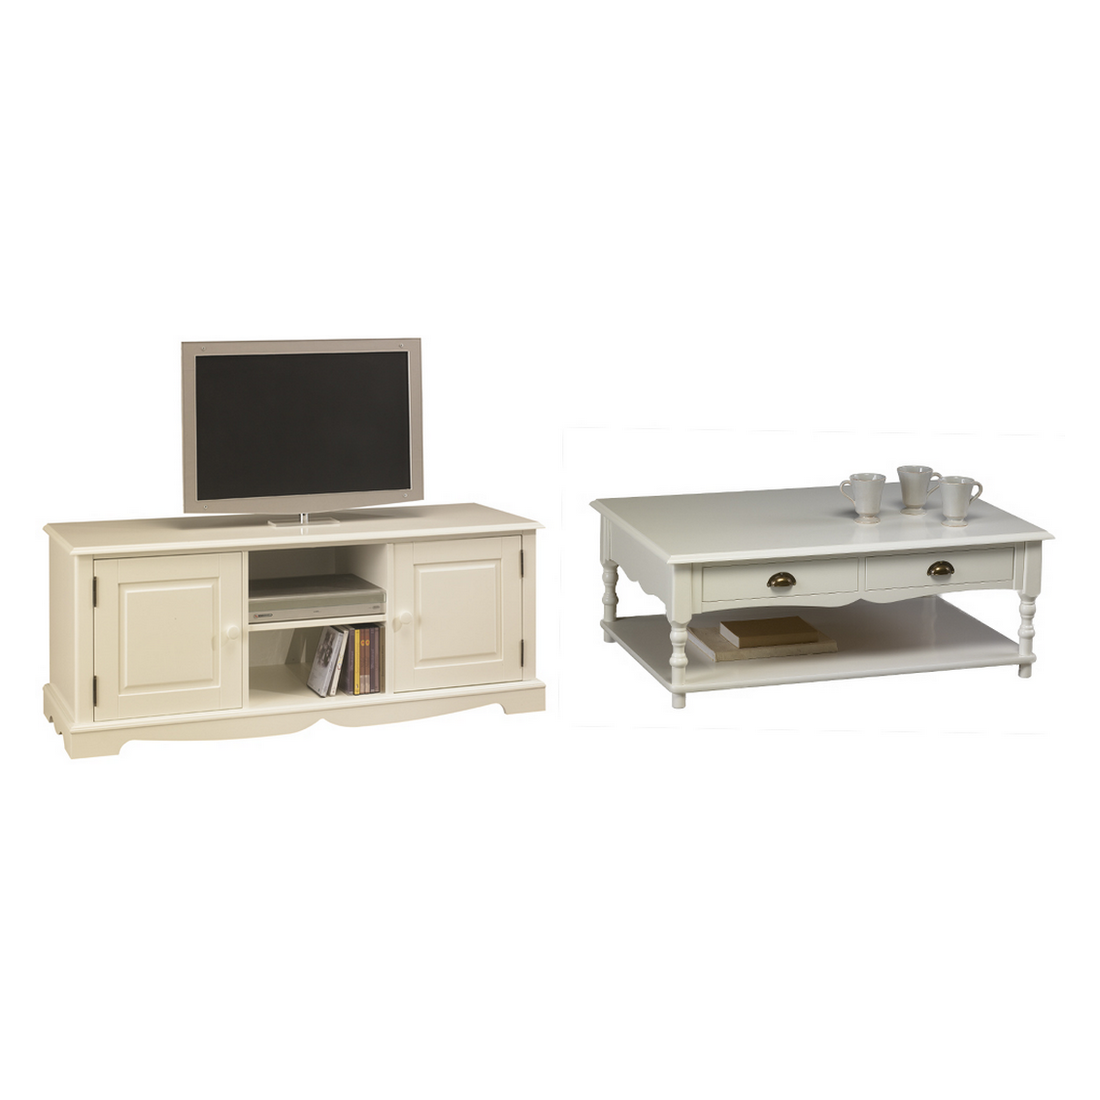 Beaux censemble meuble tv et table basse blancs meuble for Ensemble meuble tv table basse